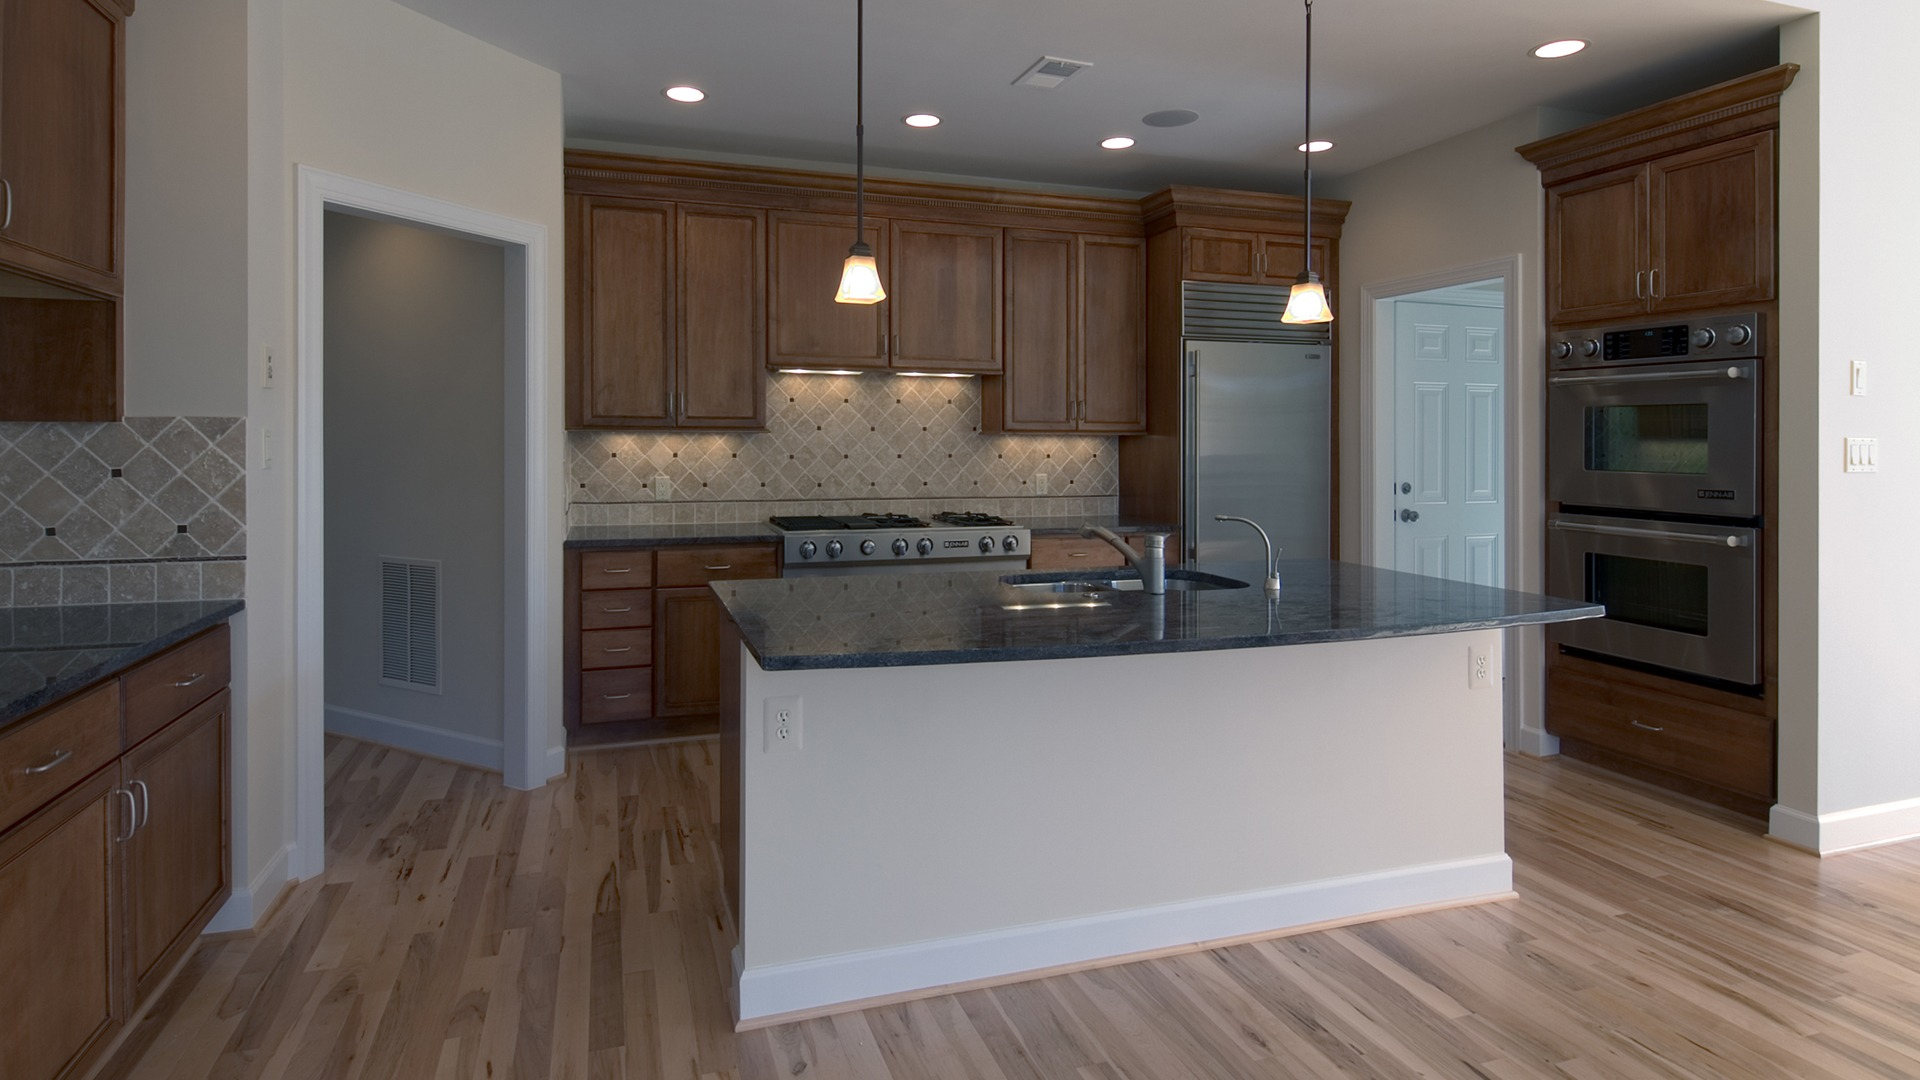 The Kitchen of the Brentwood model in Brambleton. Some options shown.